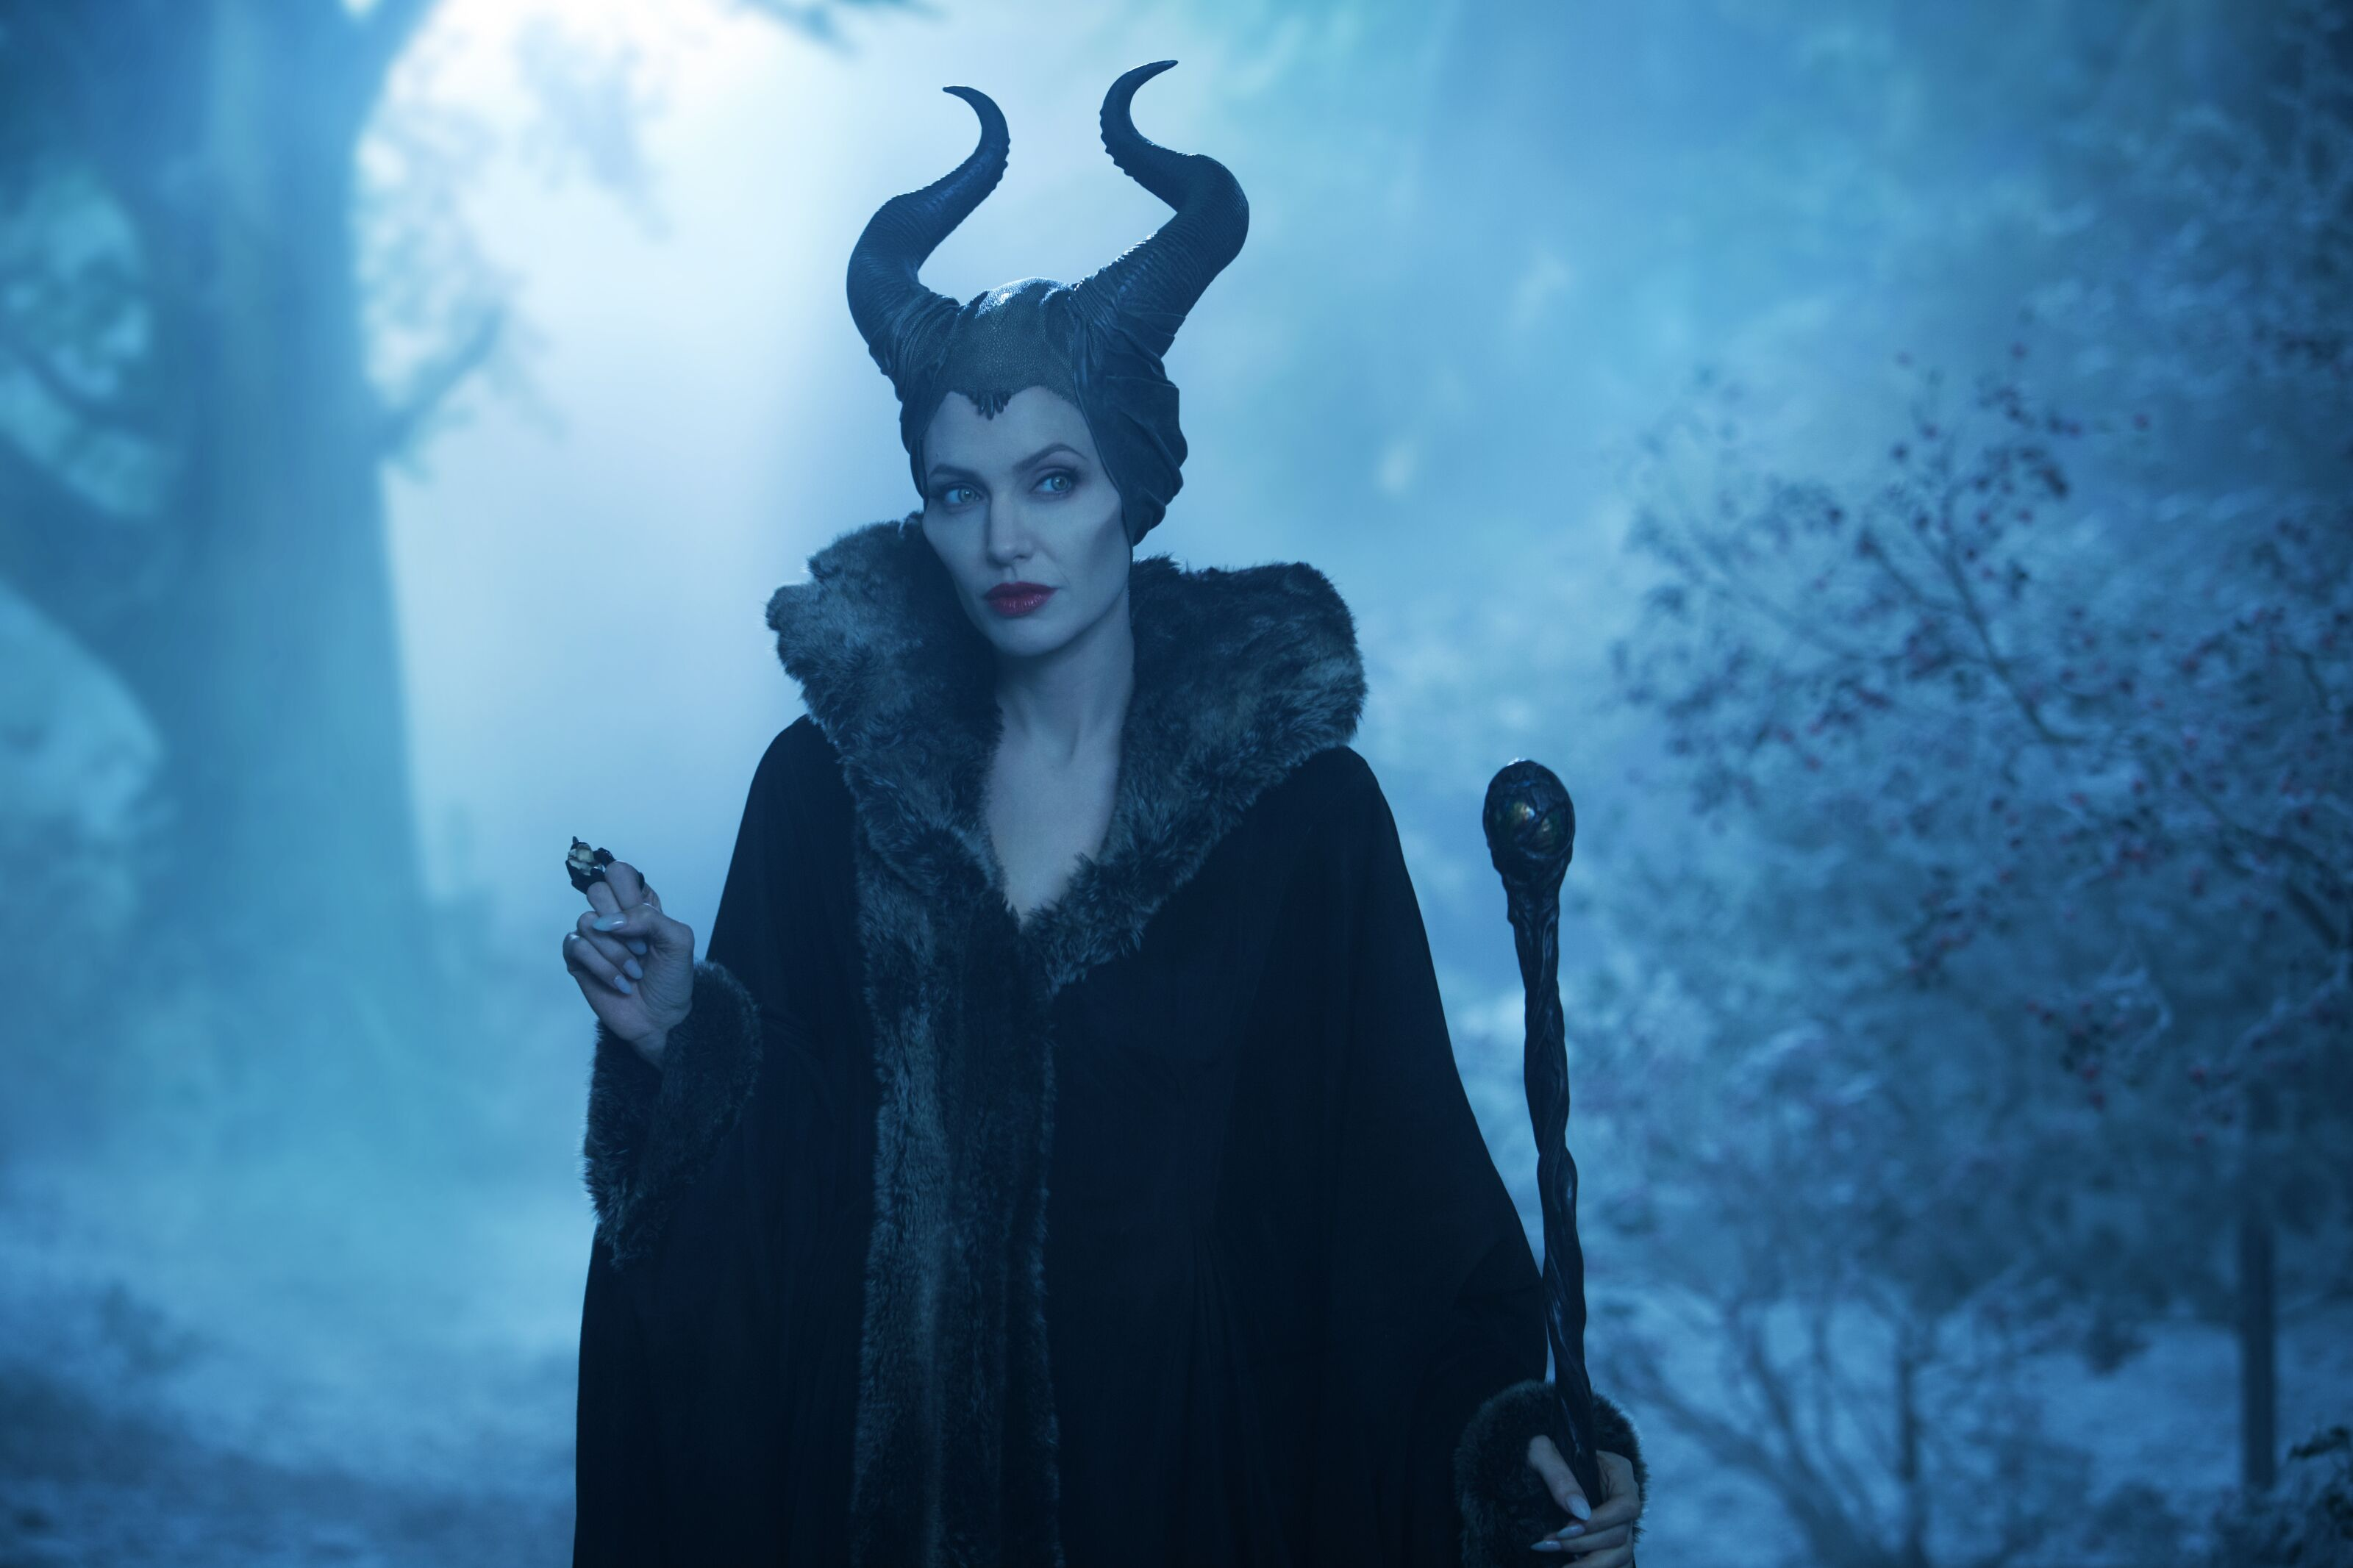 Maleficent: Mistress of Evil is a fantasy feast for the eyes